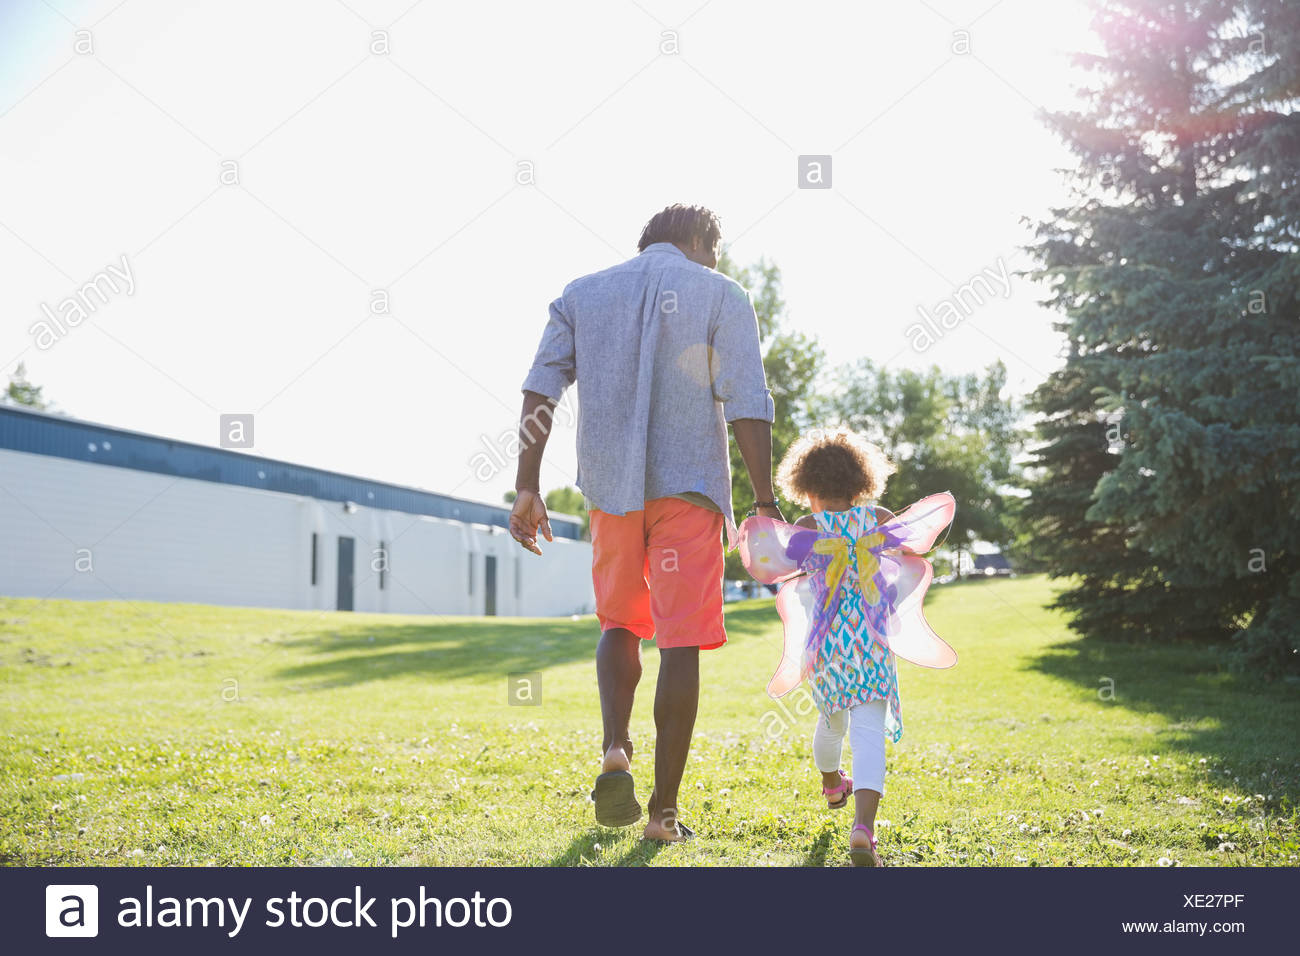 Rear view of father and daughter walking at park - Stock Image